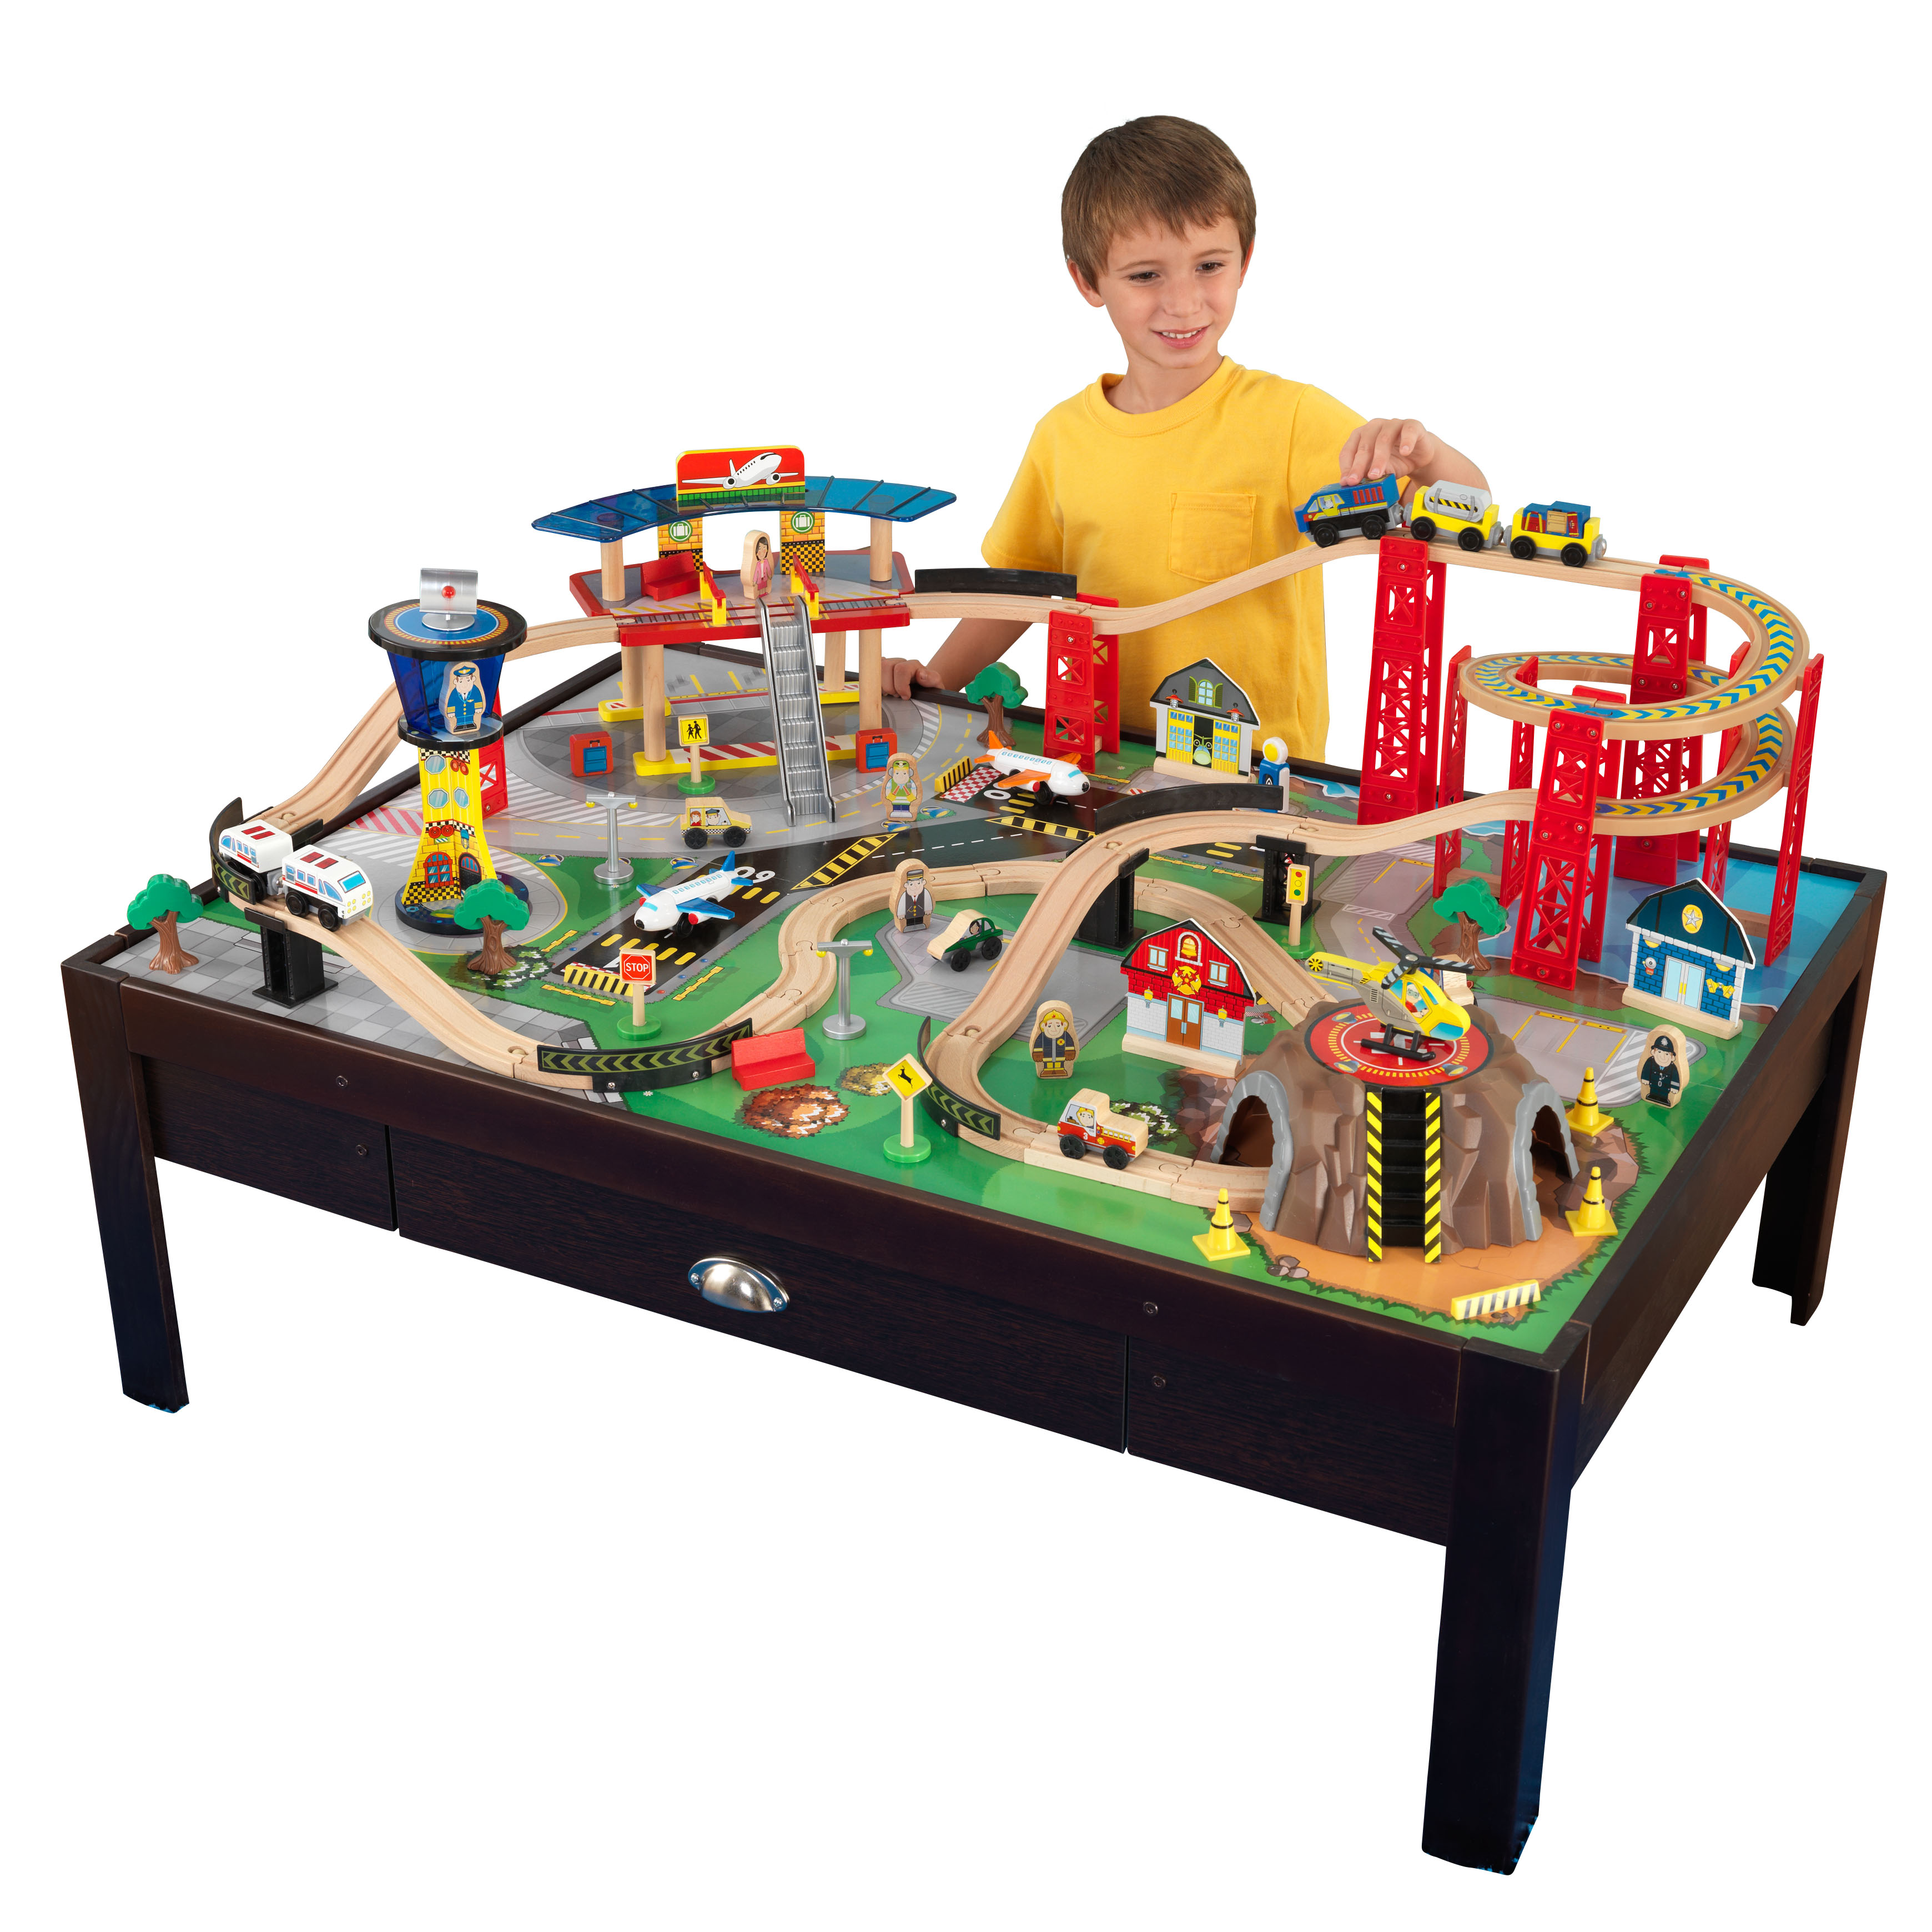 Marvelous KidKraft Airport Express Train Set U0026 Table   91 Accessories Included